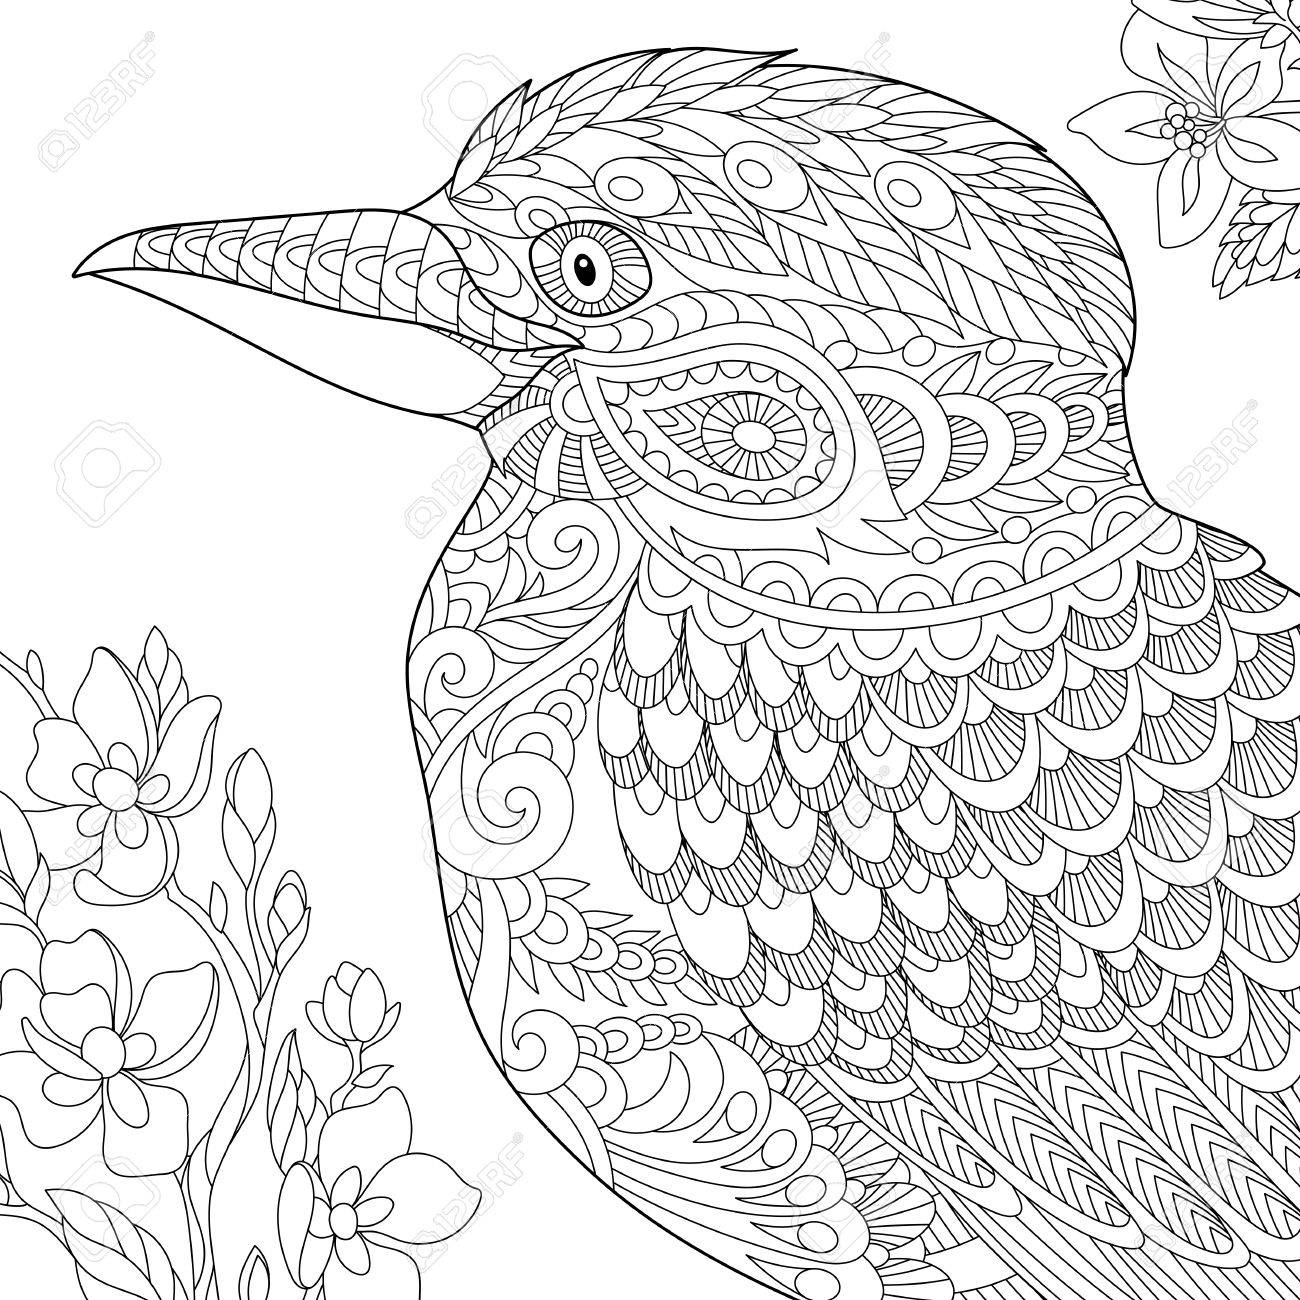 1300x1300 Coloring Page Of Australian Kookaburra Bird. Freehand Sketch